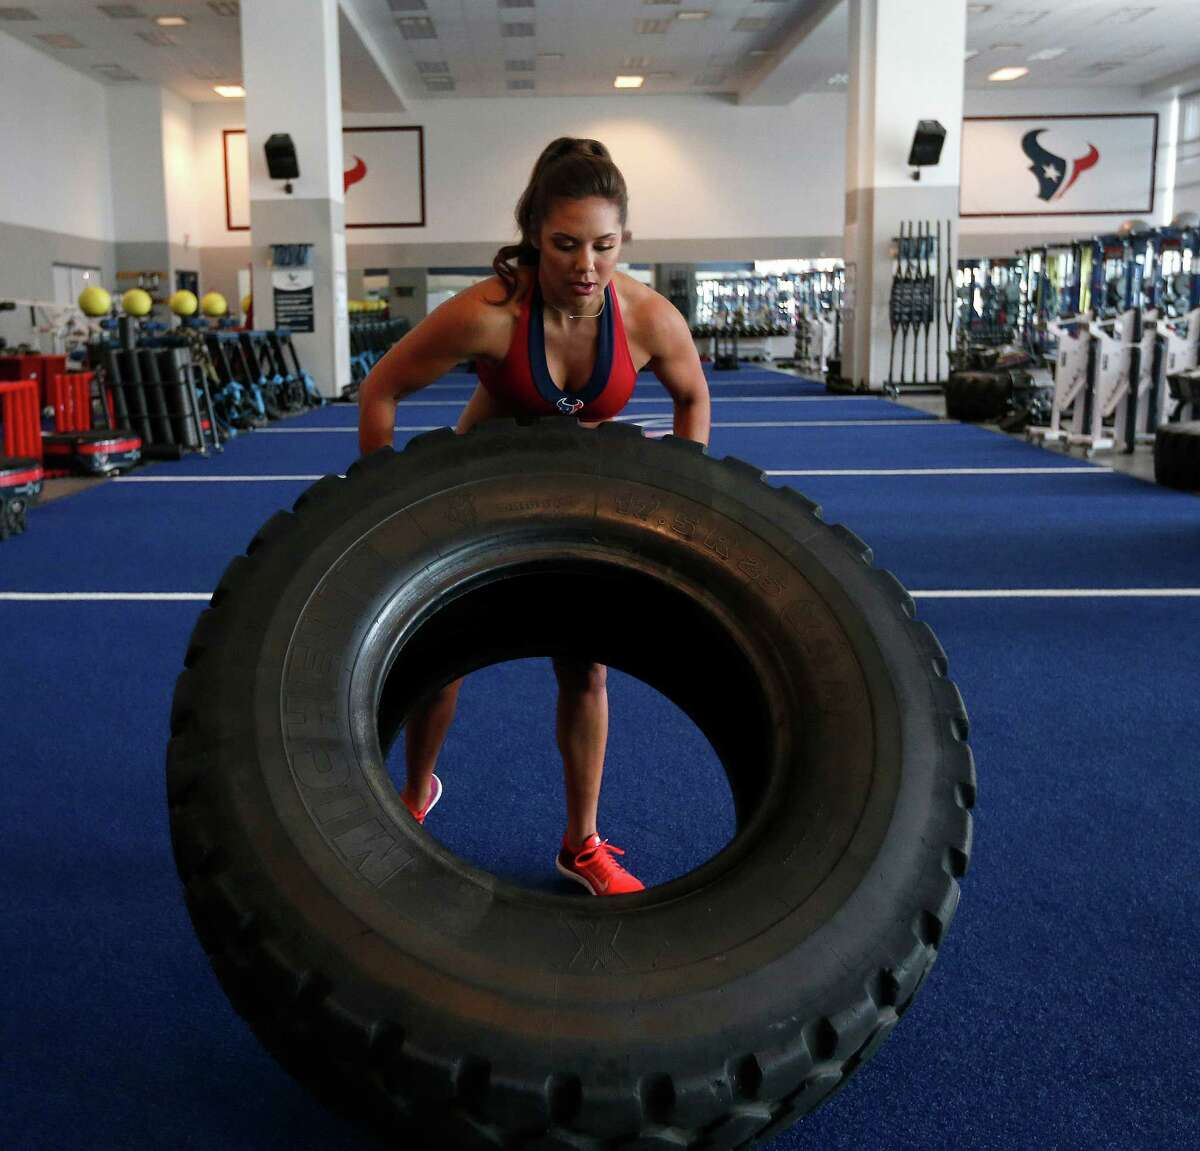 Madison, a Houston Texans cheerleader works out by flipping a giant truck tire in the Houston Texans weight room, Wednesday, April 6, 2016, in Houston. ( Karen Warren / Houston Chronicle )